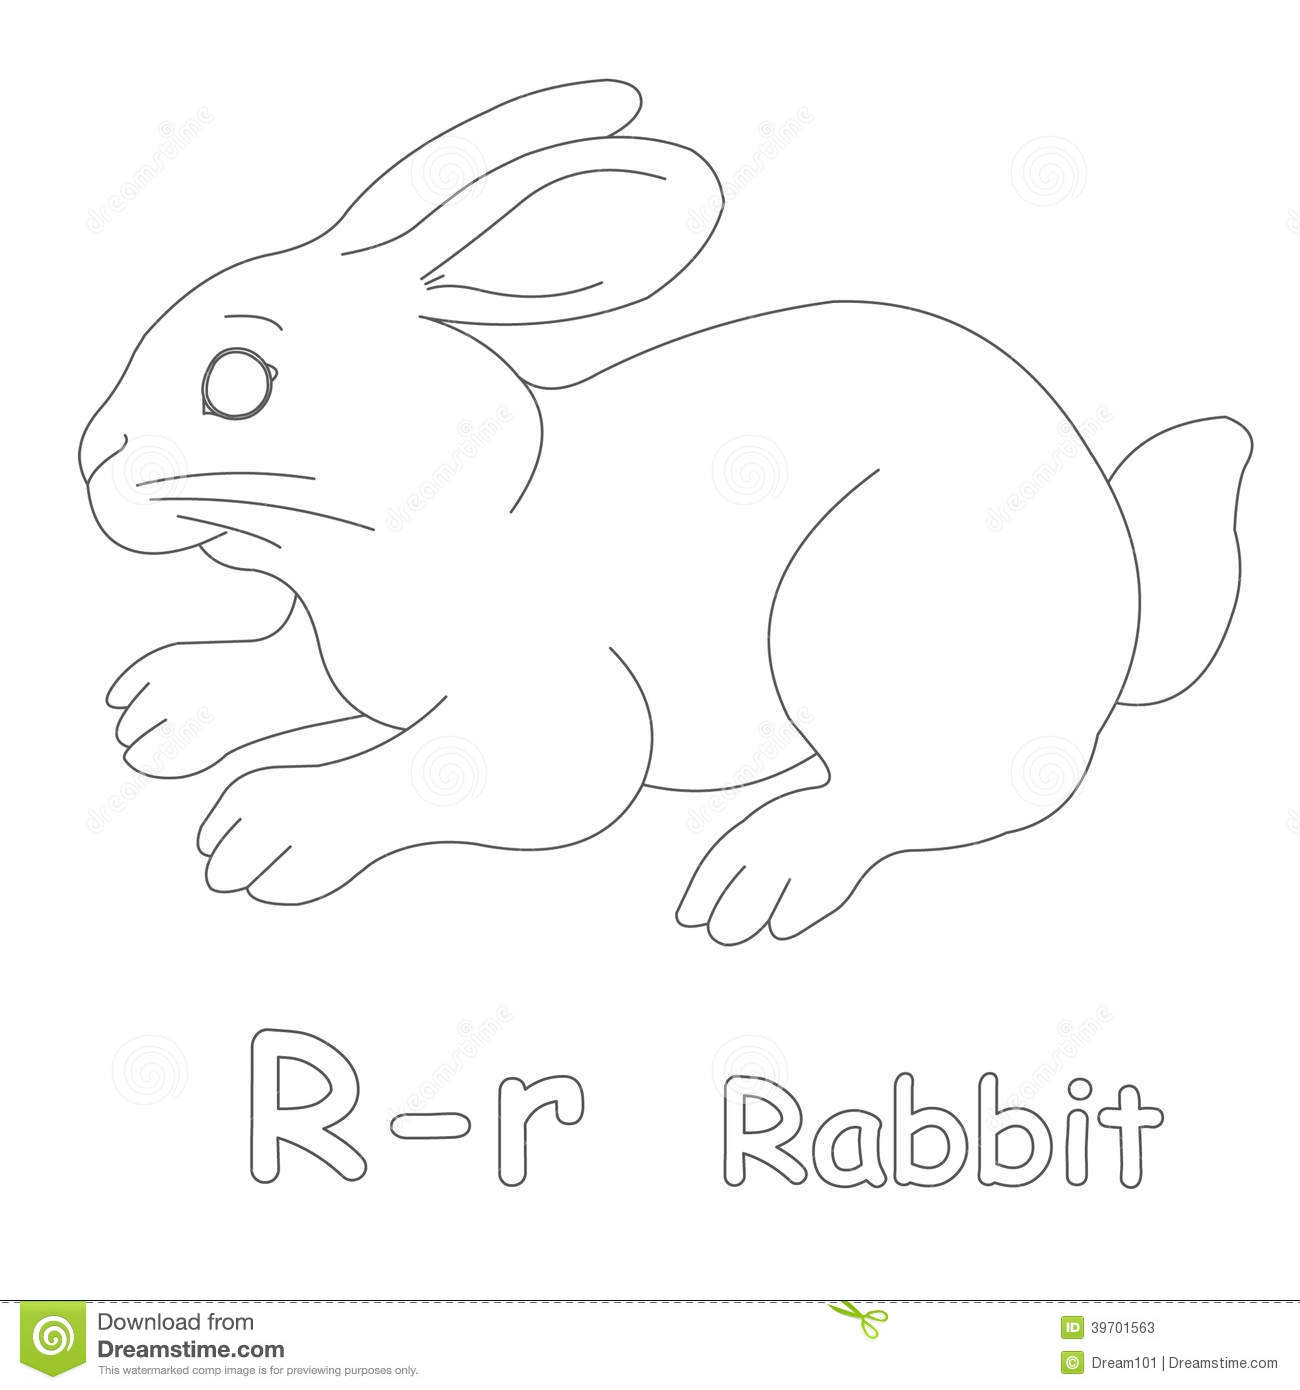 R For Rabbit Coloring Page Stock Illustration